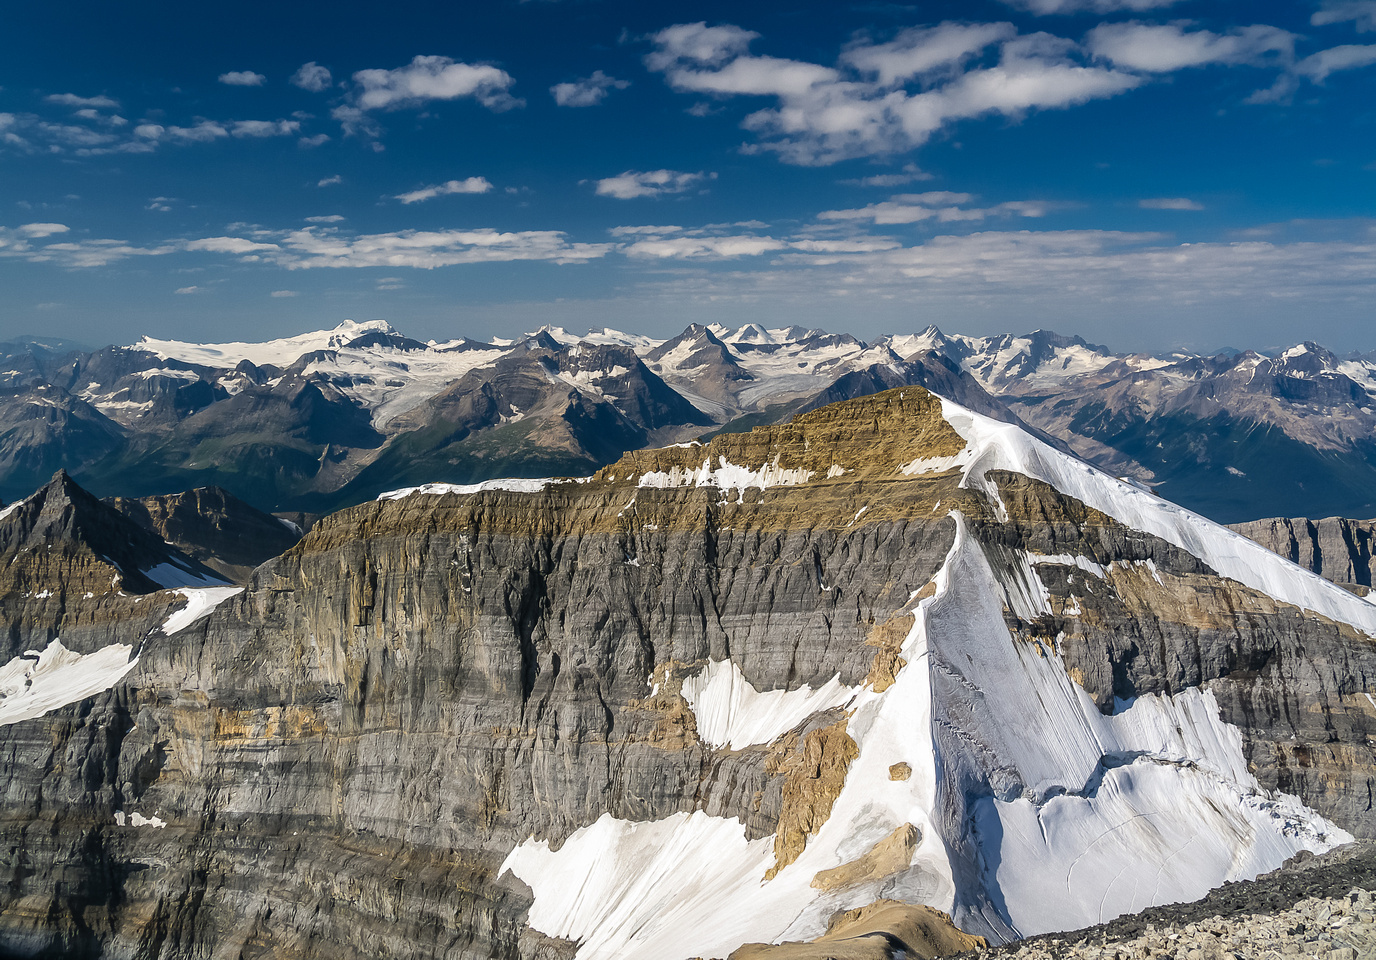 Looking over White Pyramid to the Freshfield Icefield.